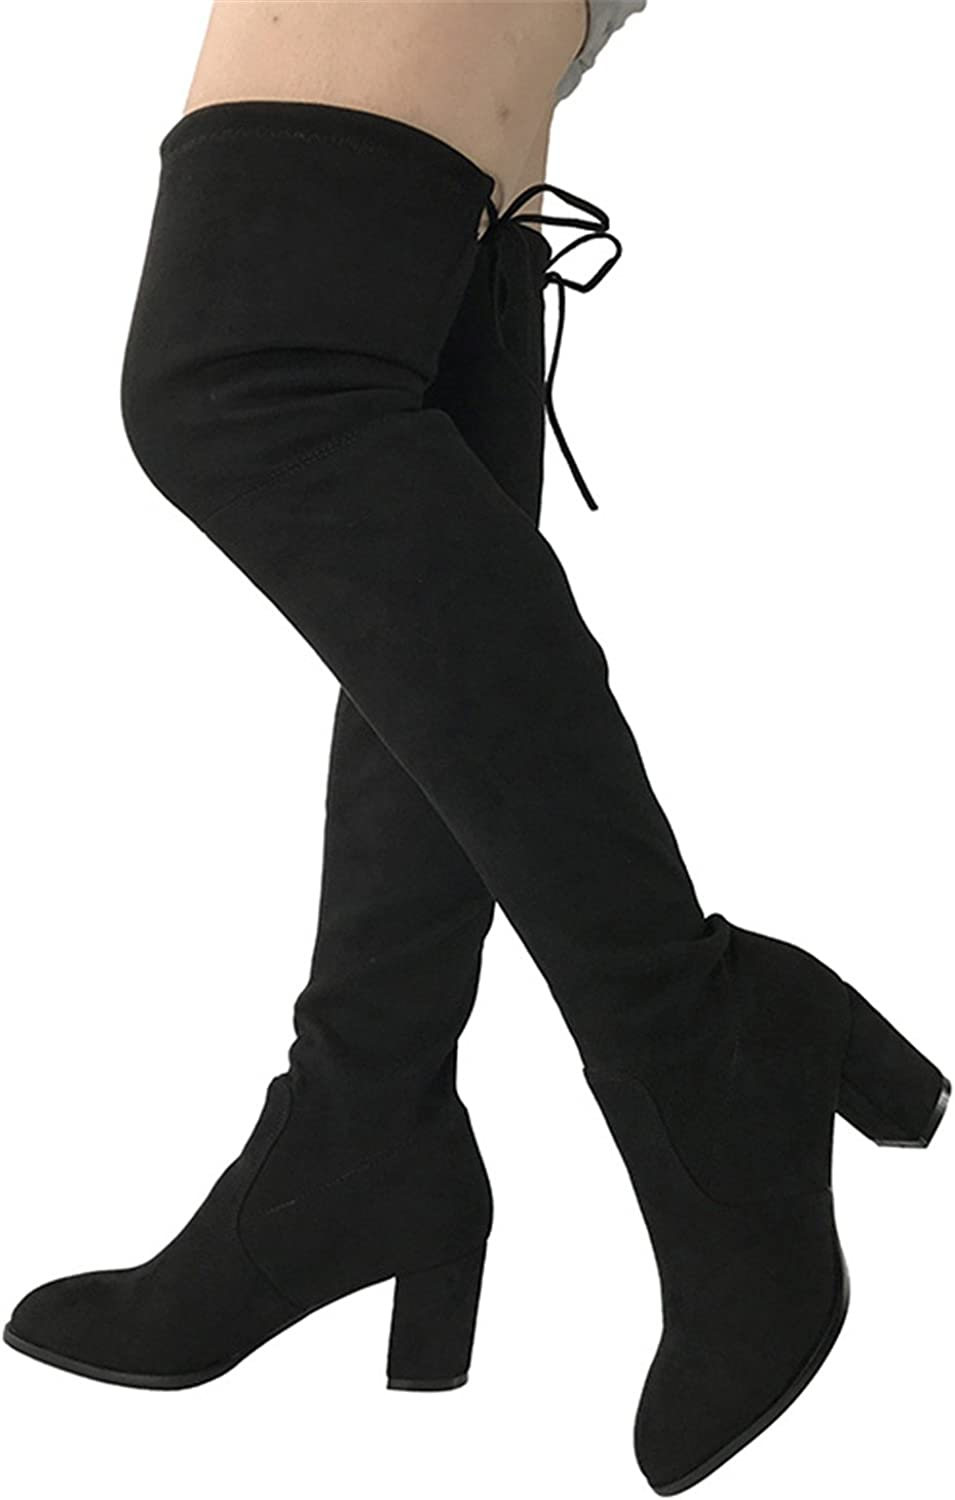 Leroyca Womens Micro Suede Thigh High Boots Block Thick Heel Stretch Over The Knee Boots for Woman Plus Size